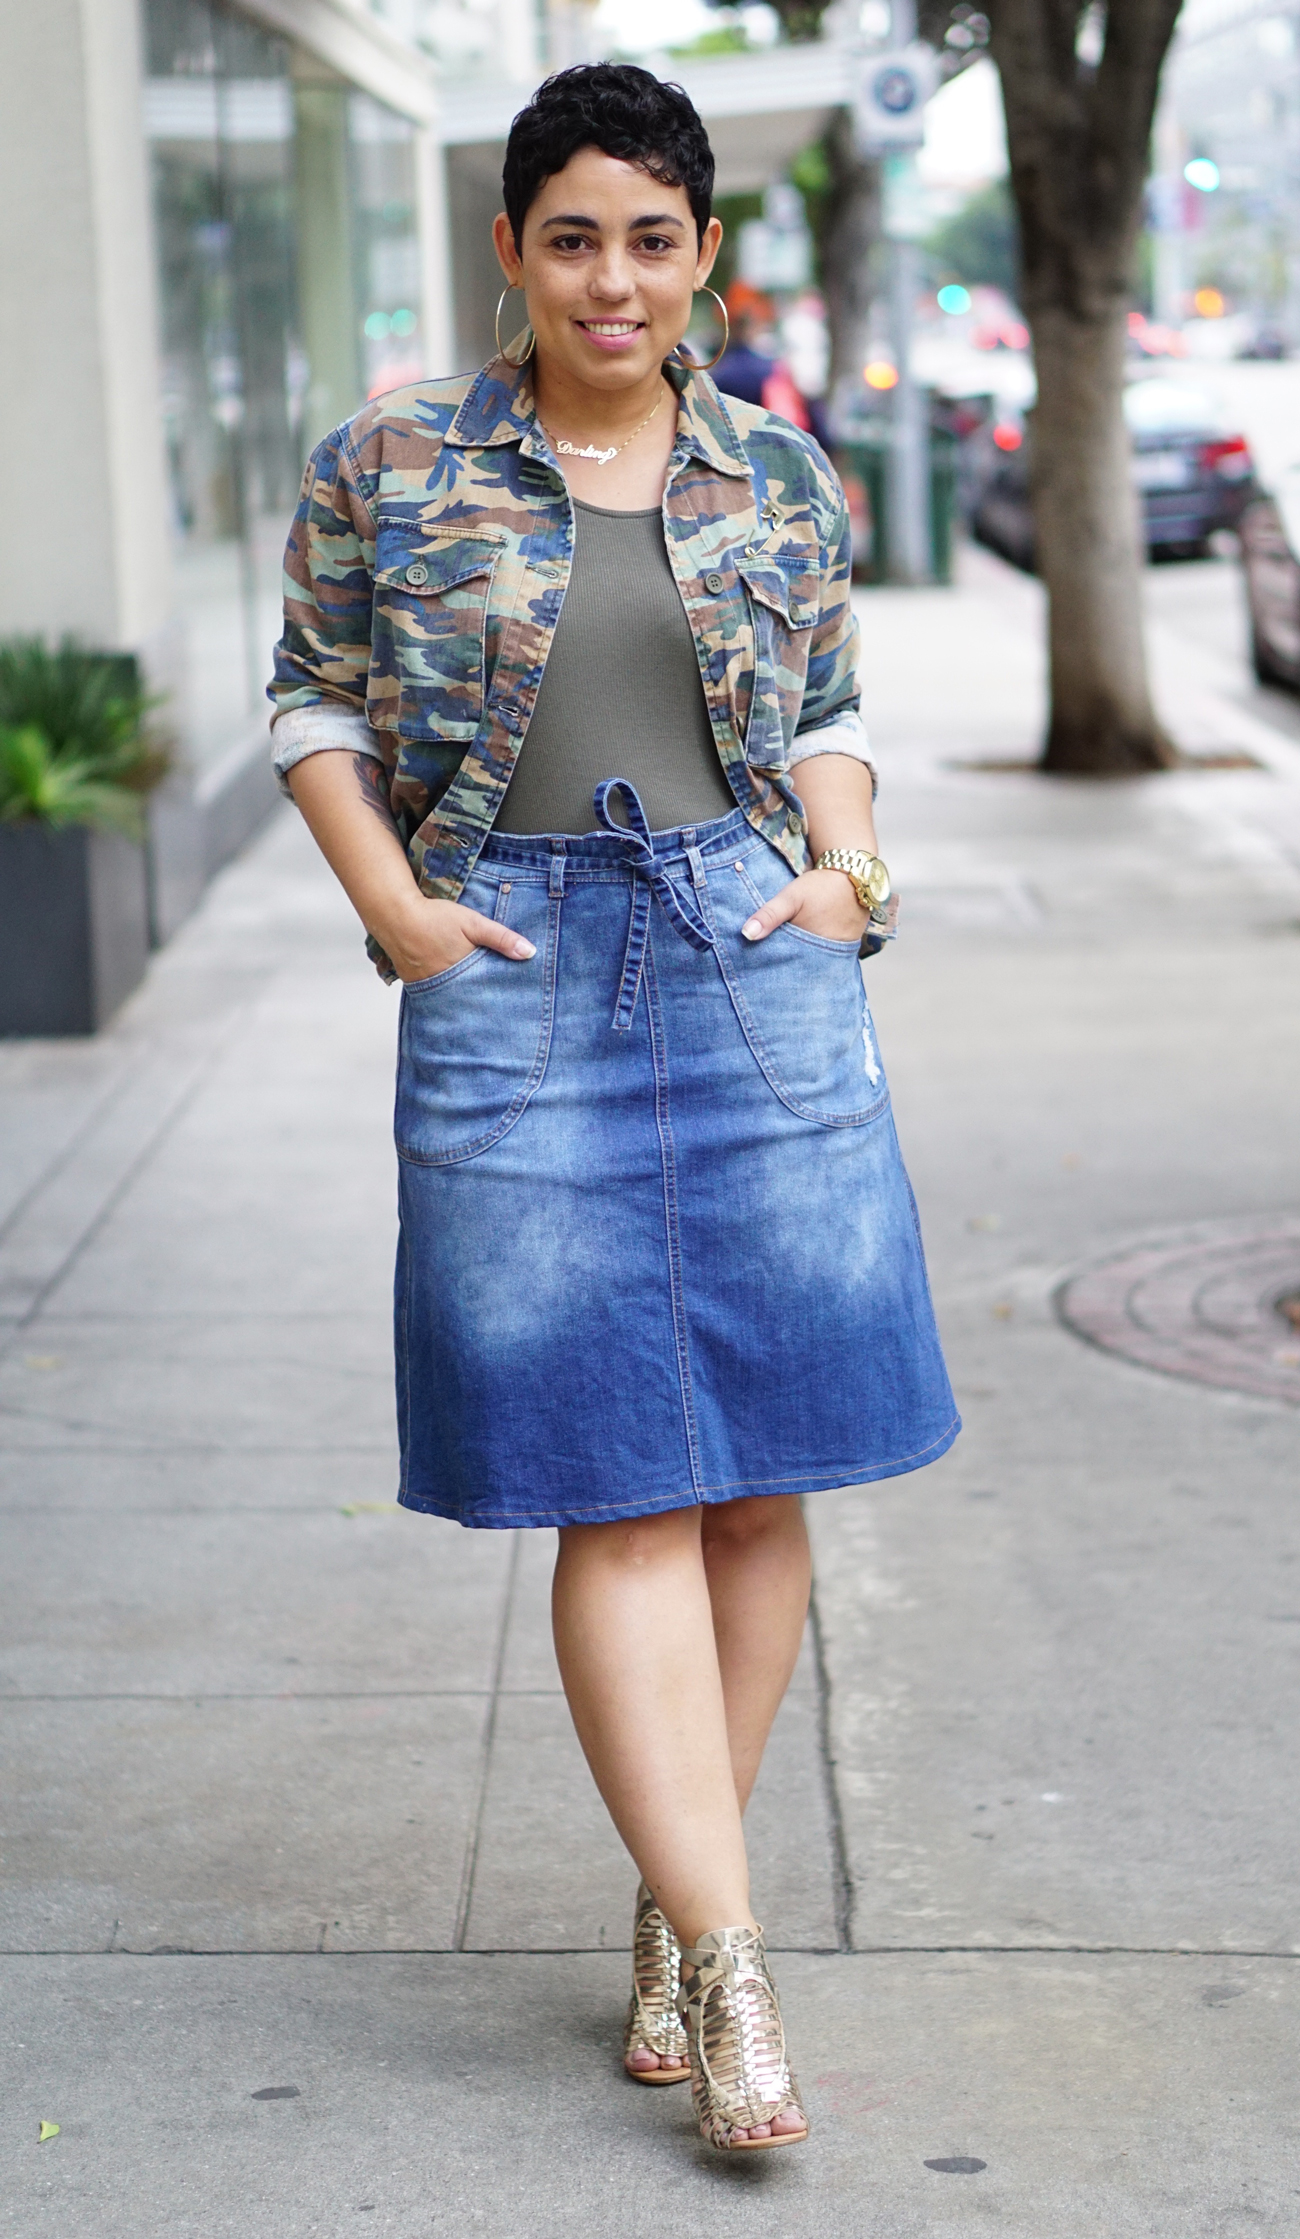 denim skirt two